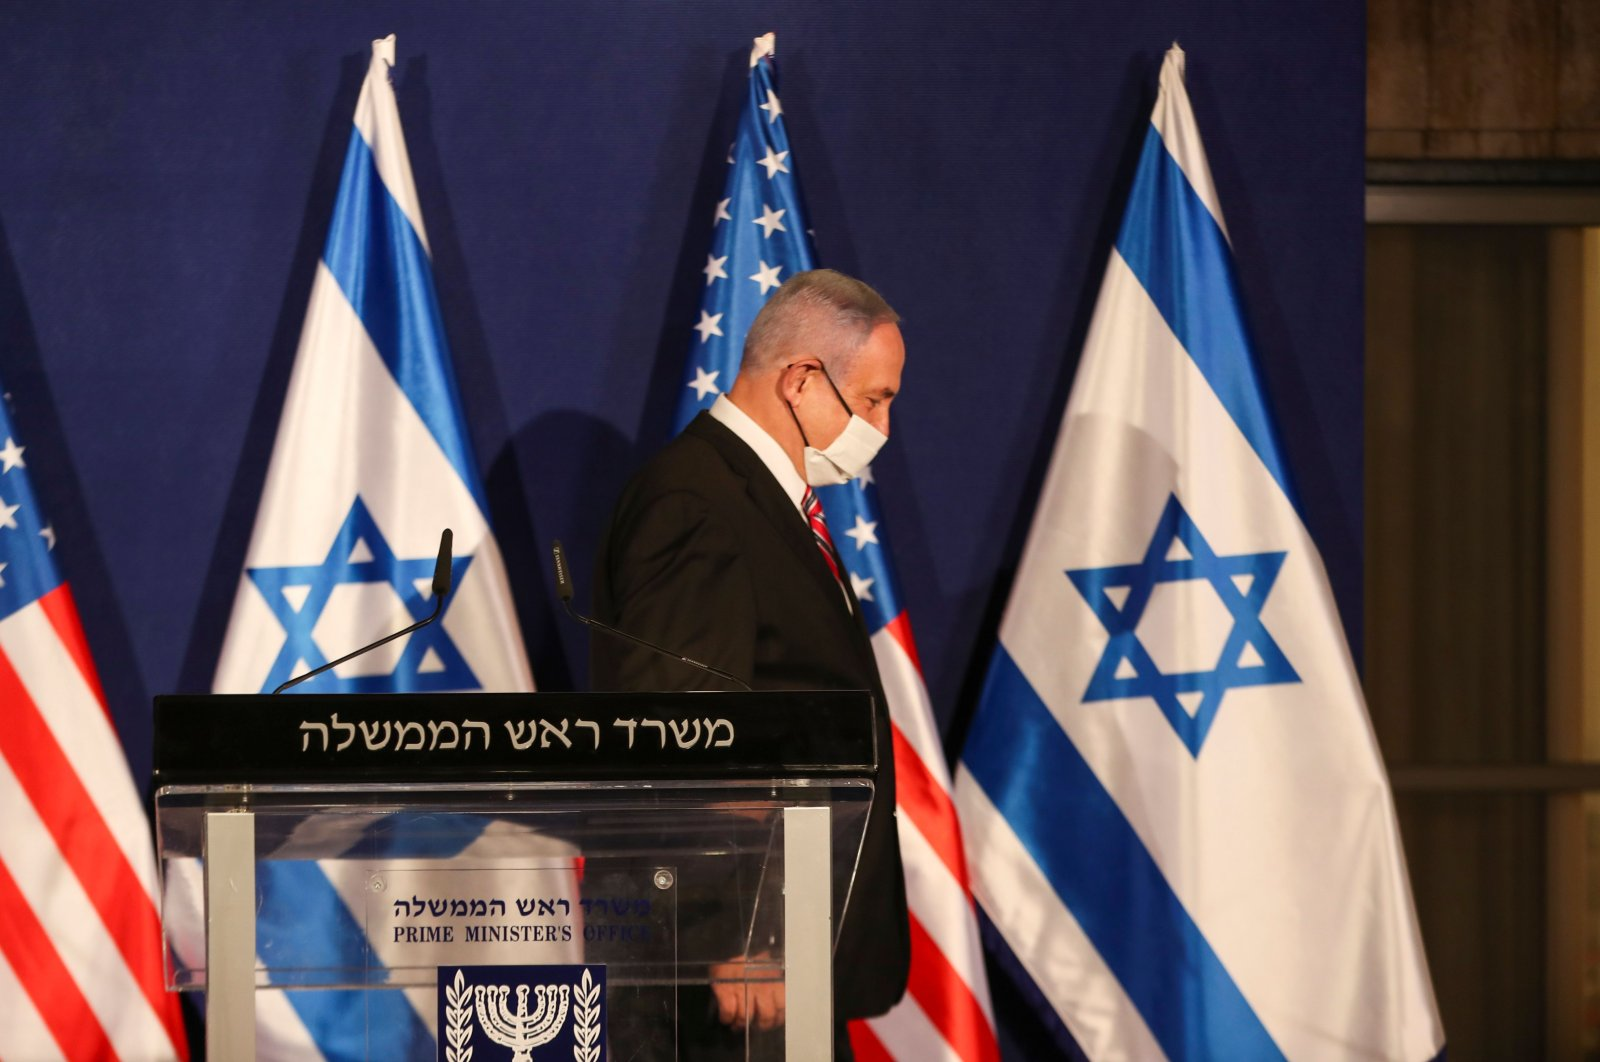 Israeli Prime Minister Benjamin Netanyahu leaves after a news conference with a U.S. residential adviser in Jerusalem, Dec. 21, 2020. (AFP Photo)